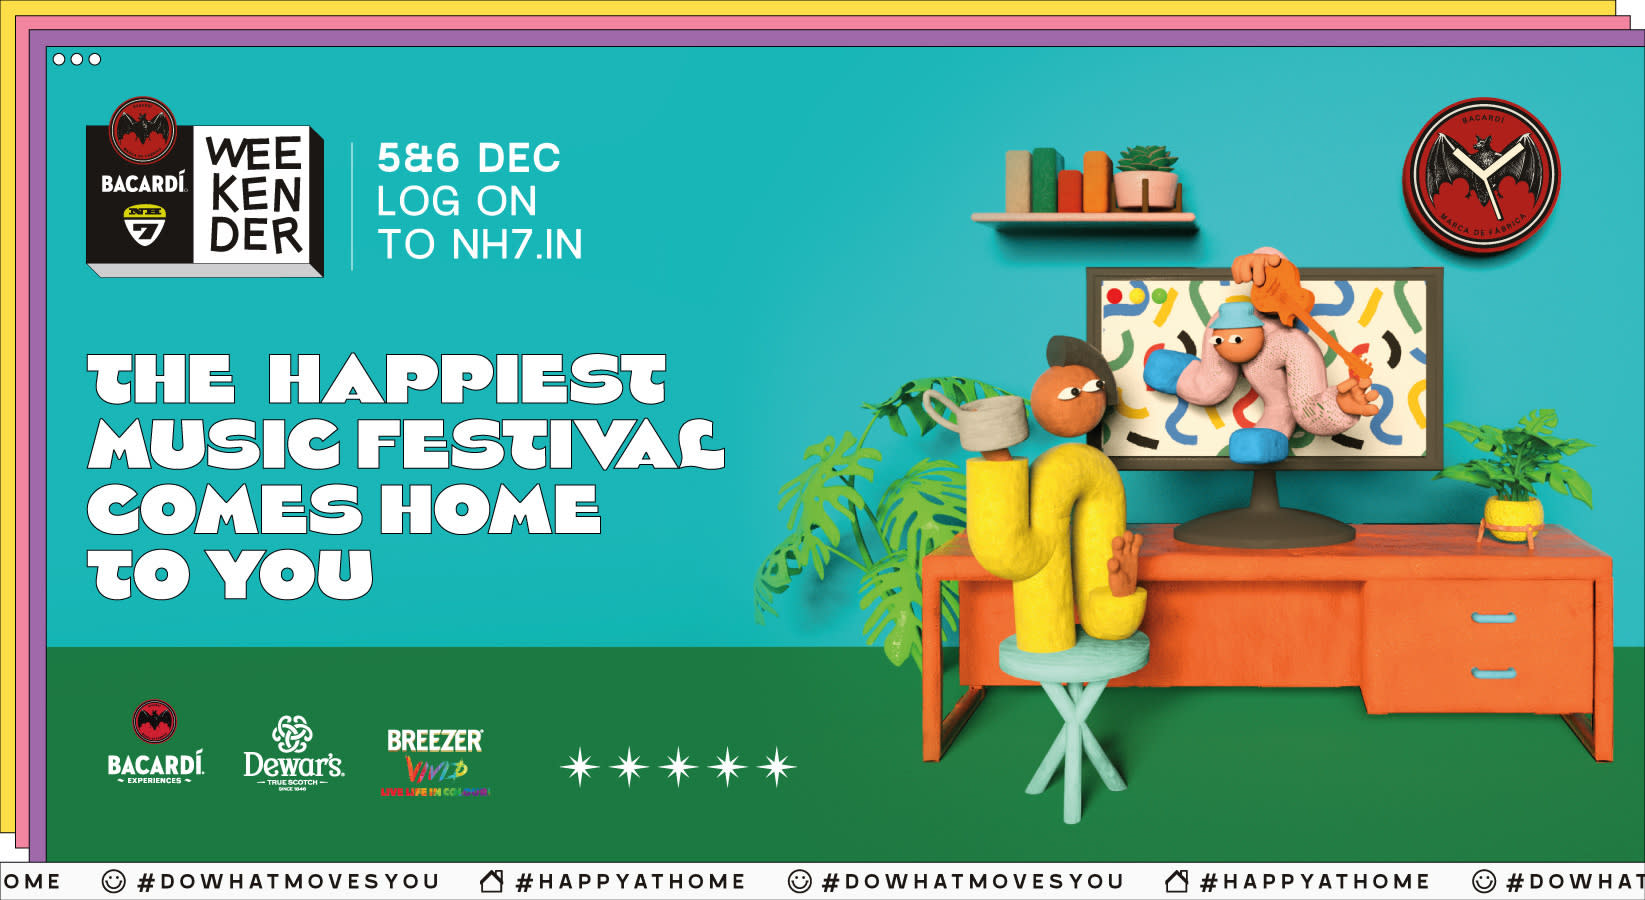 BACARDI NH7 Weekender comes home to you in December!